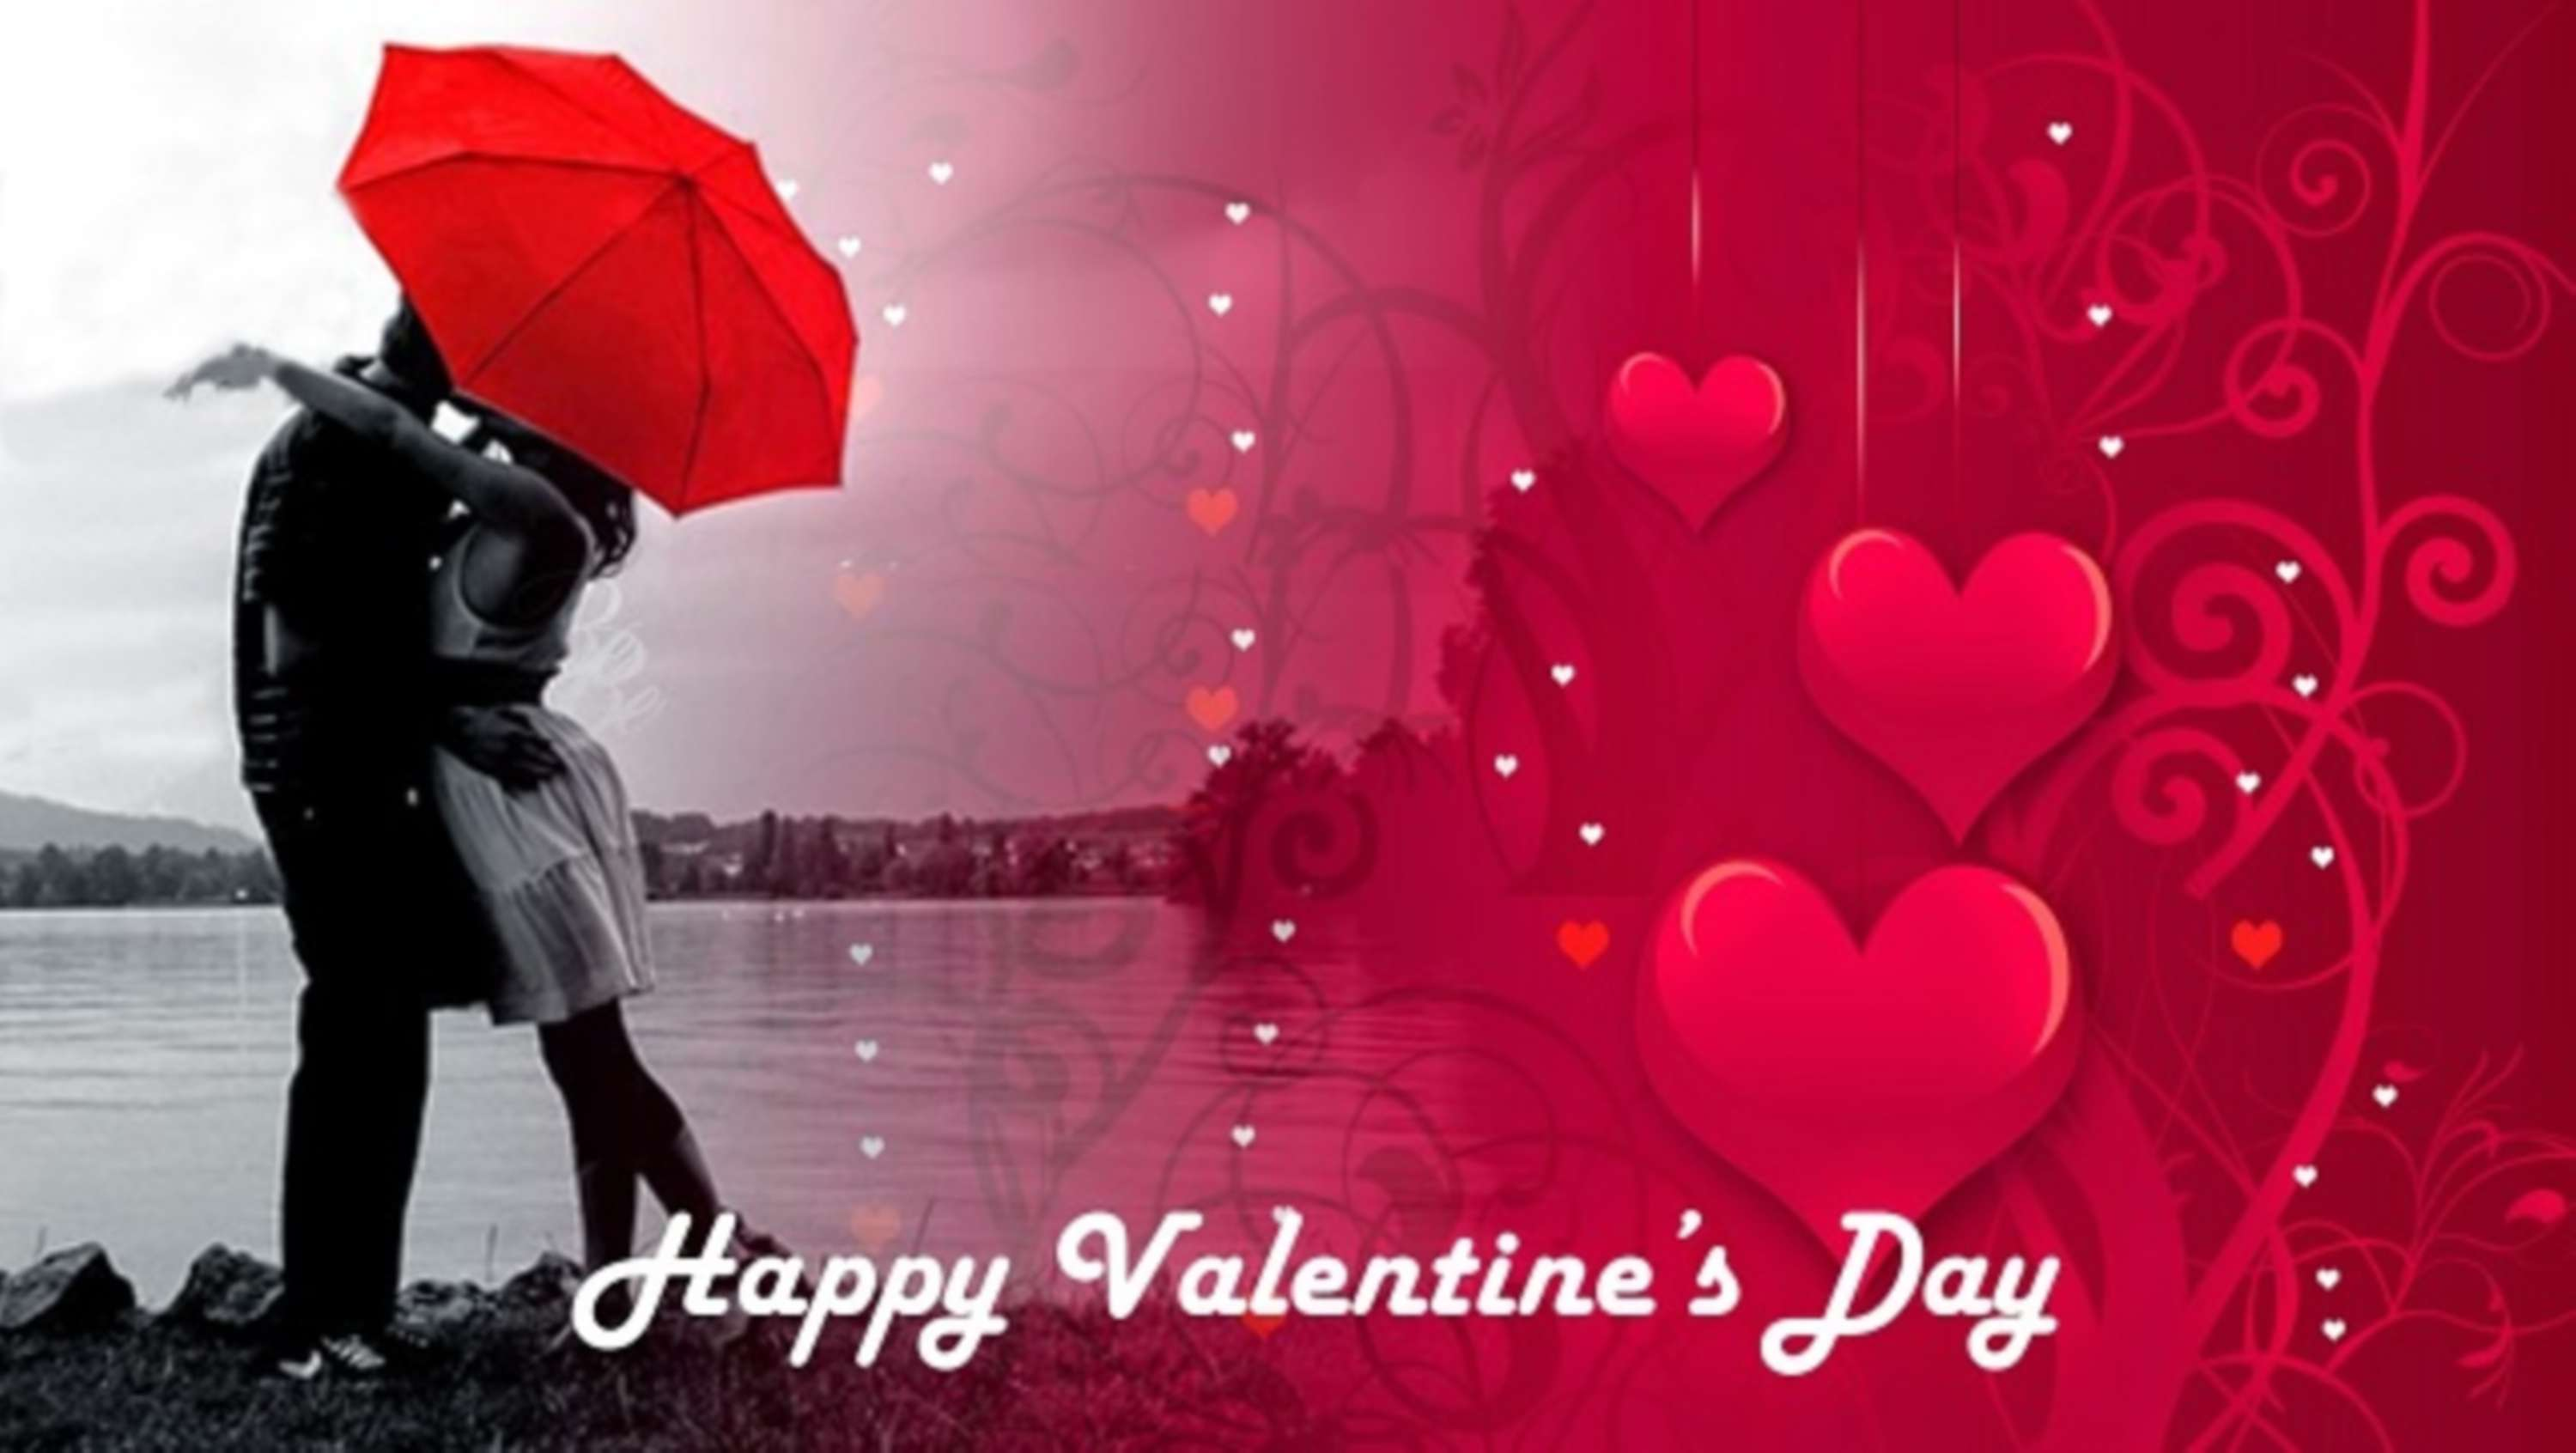 Valentines Quotes For Her Romantic Love Quotes For Her Or Him For This Valentines Day 2017